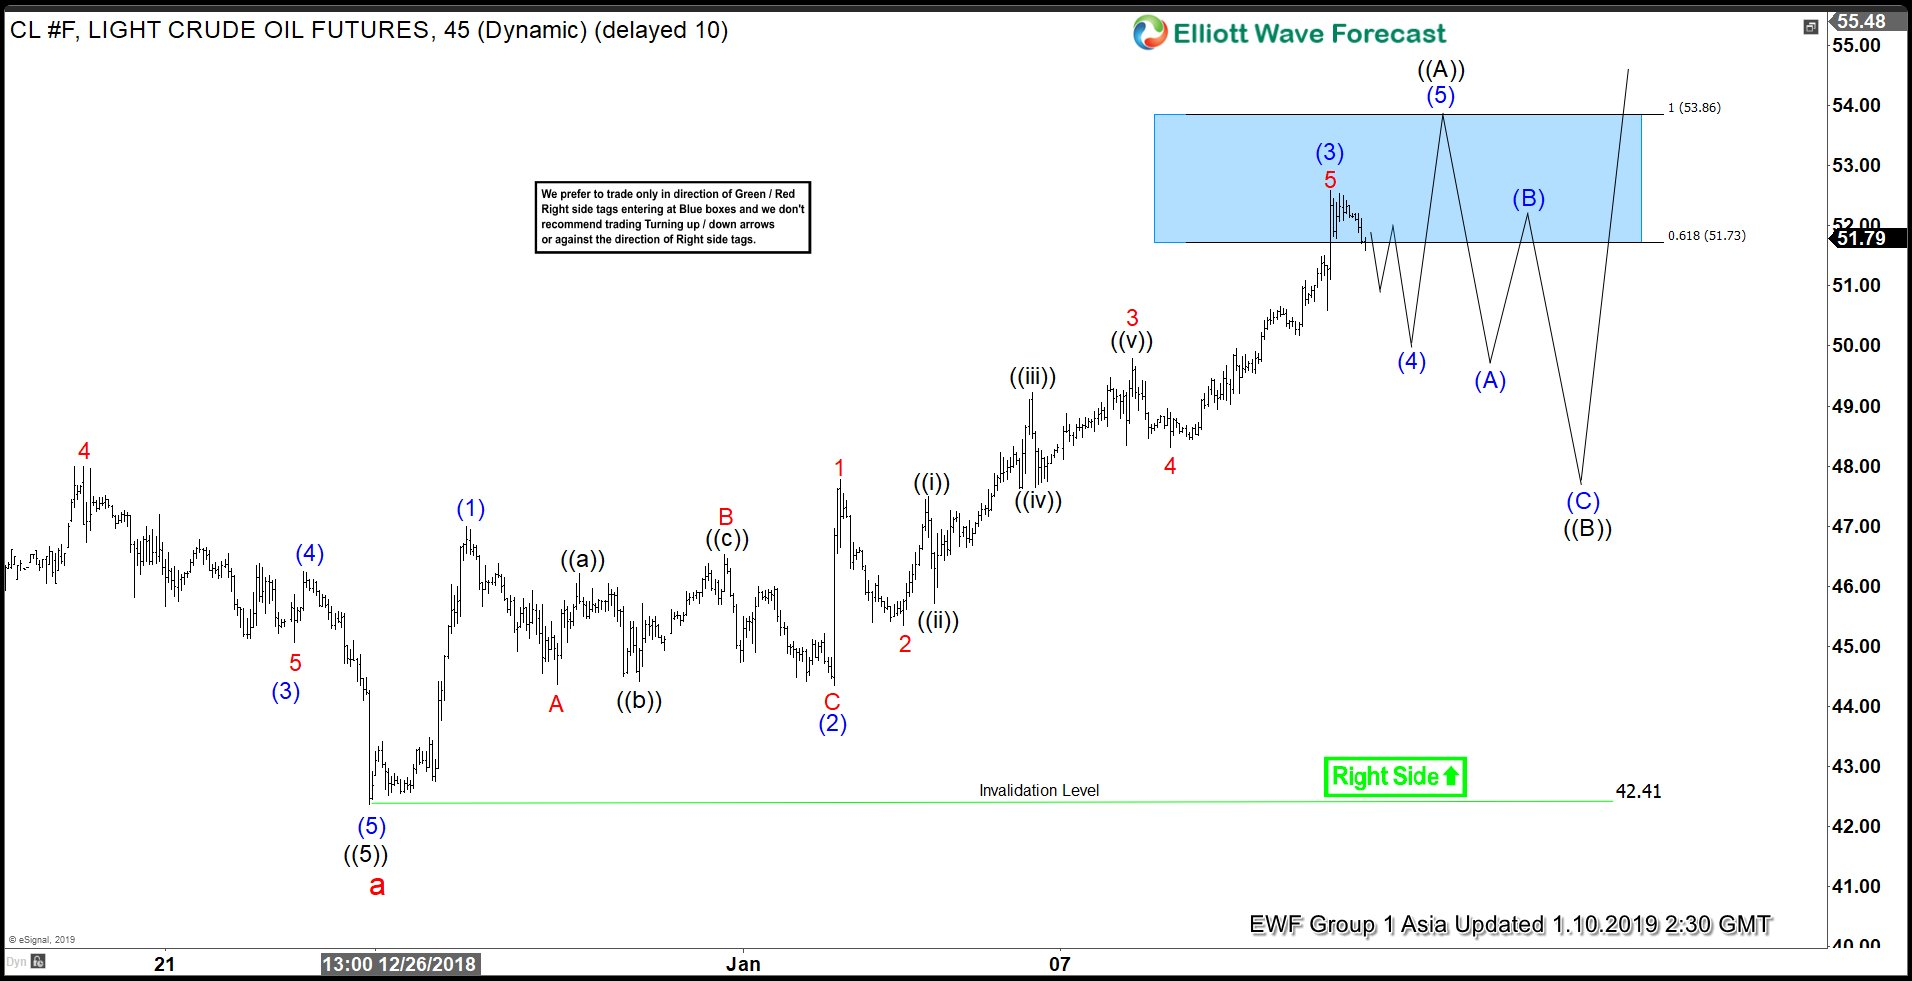 Short Term Elliott Wave View in Oil Favoring More Upside